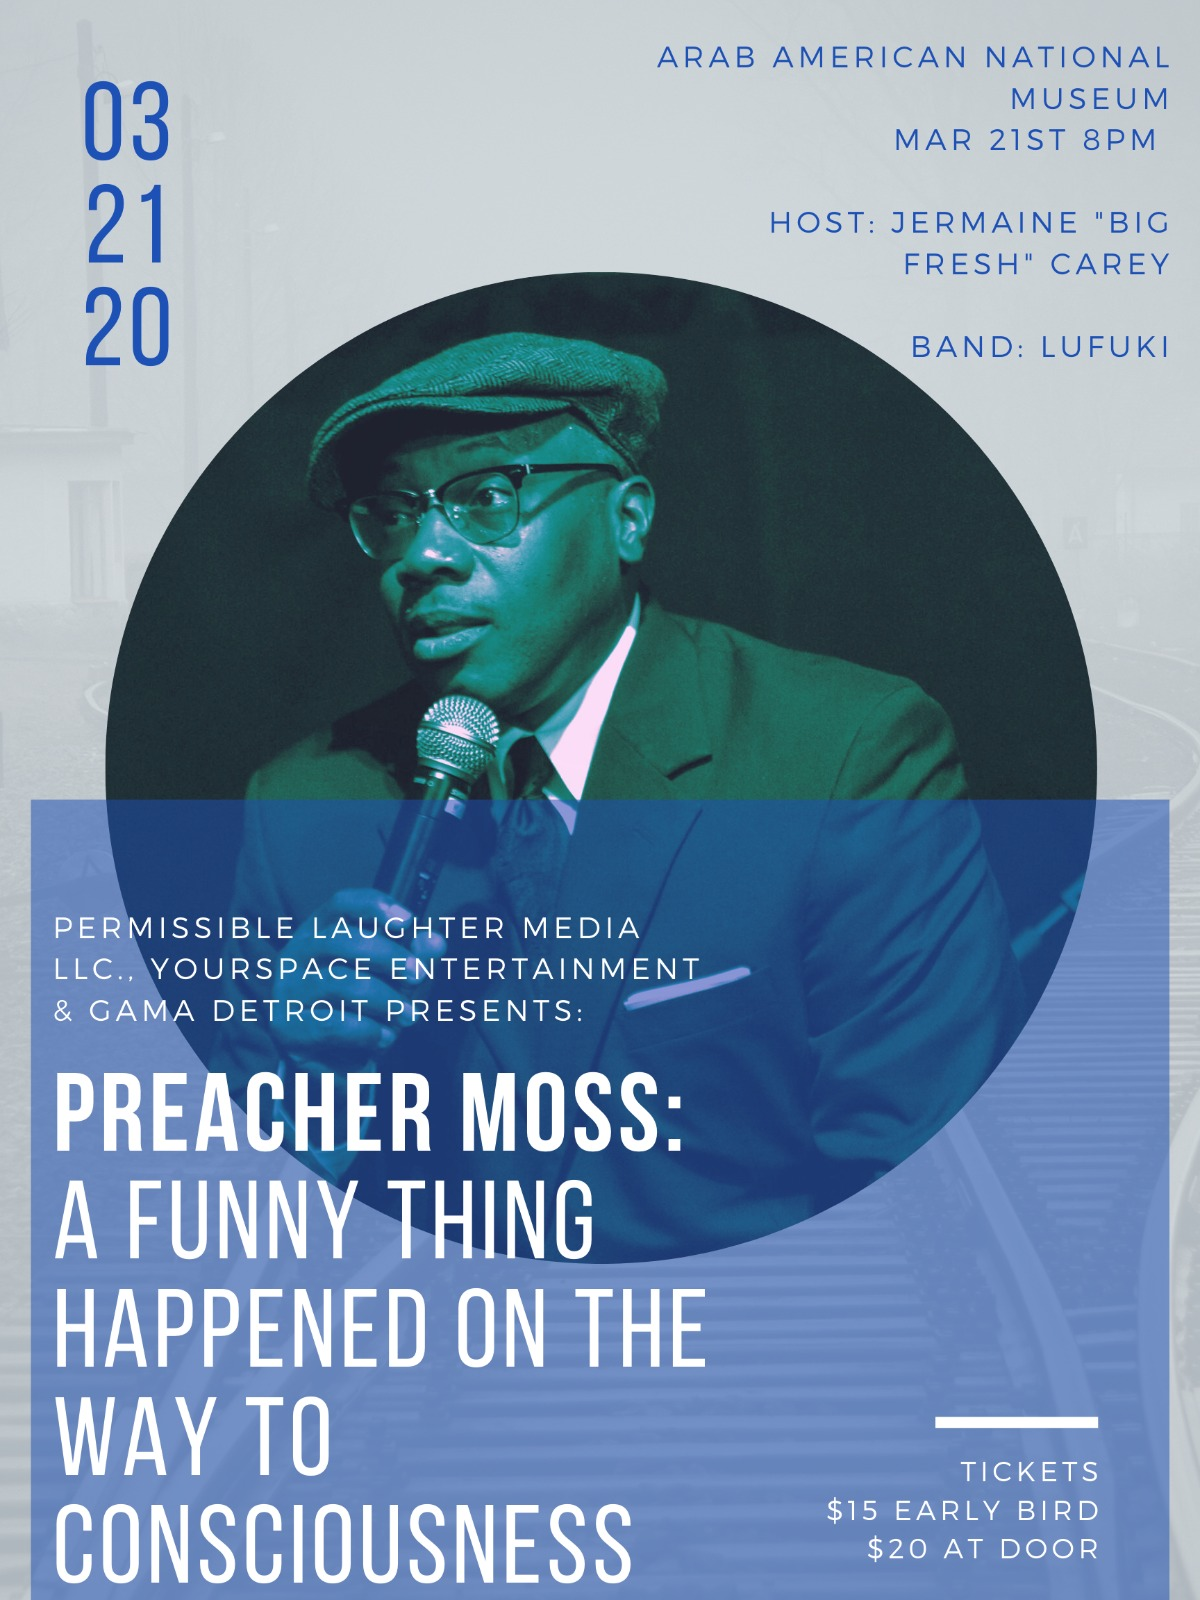 Preacher Moss: A Funny Thing Happened on the Way to Consciouness